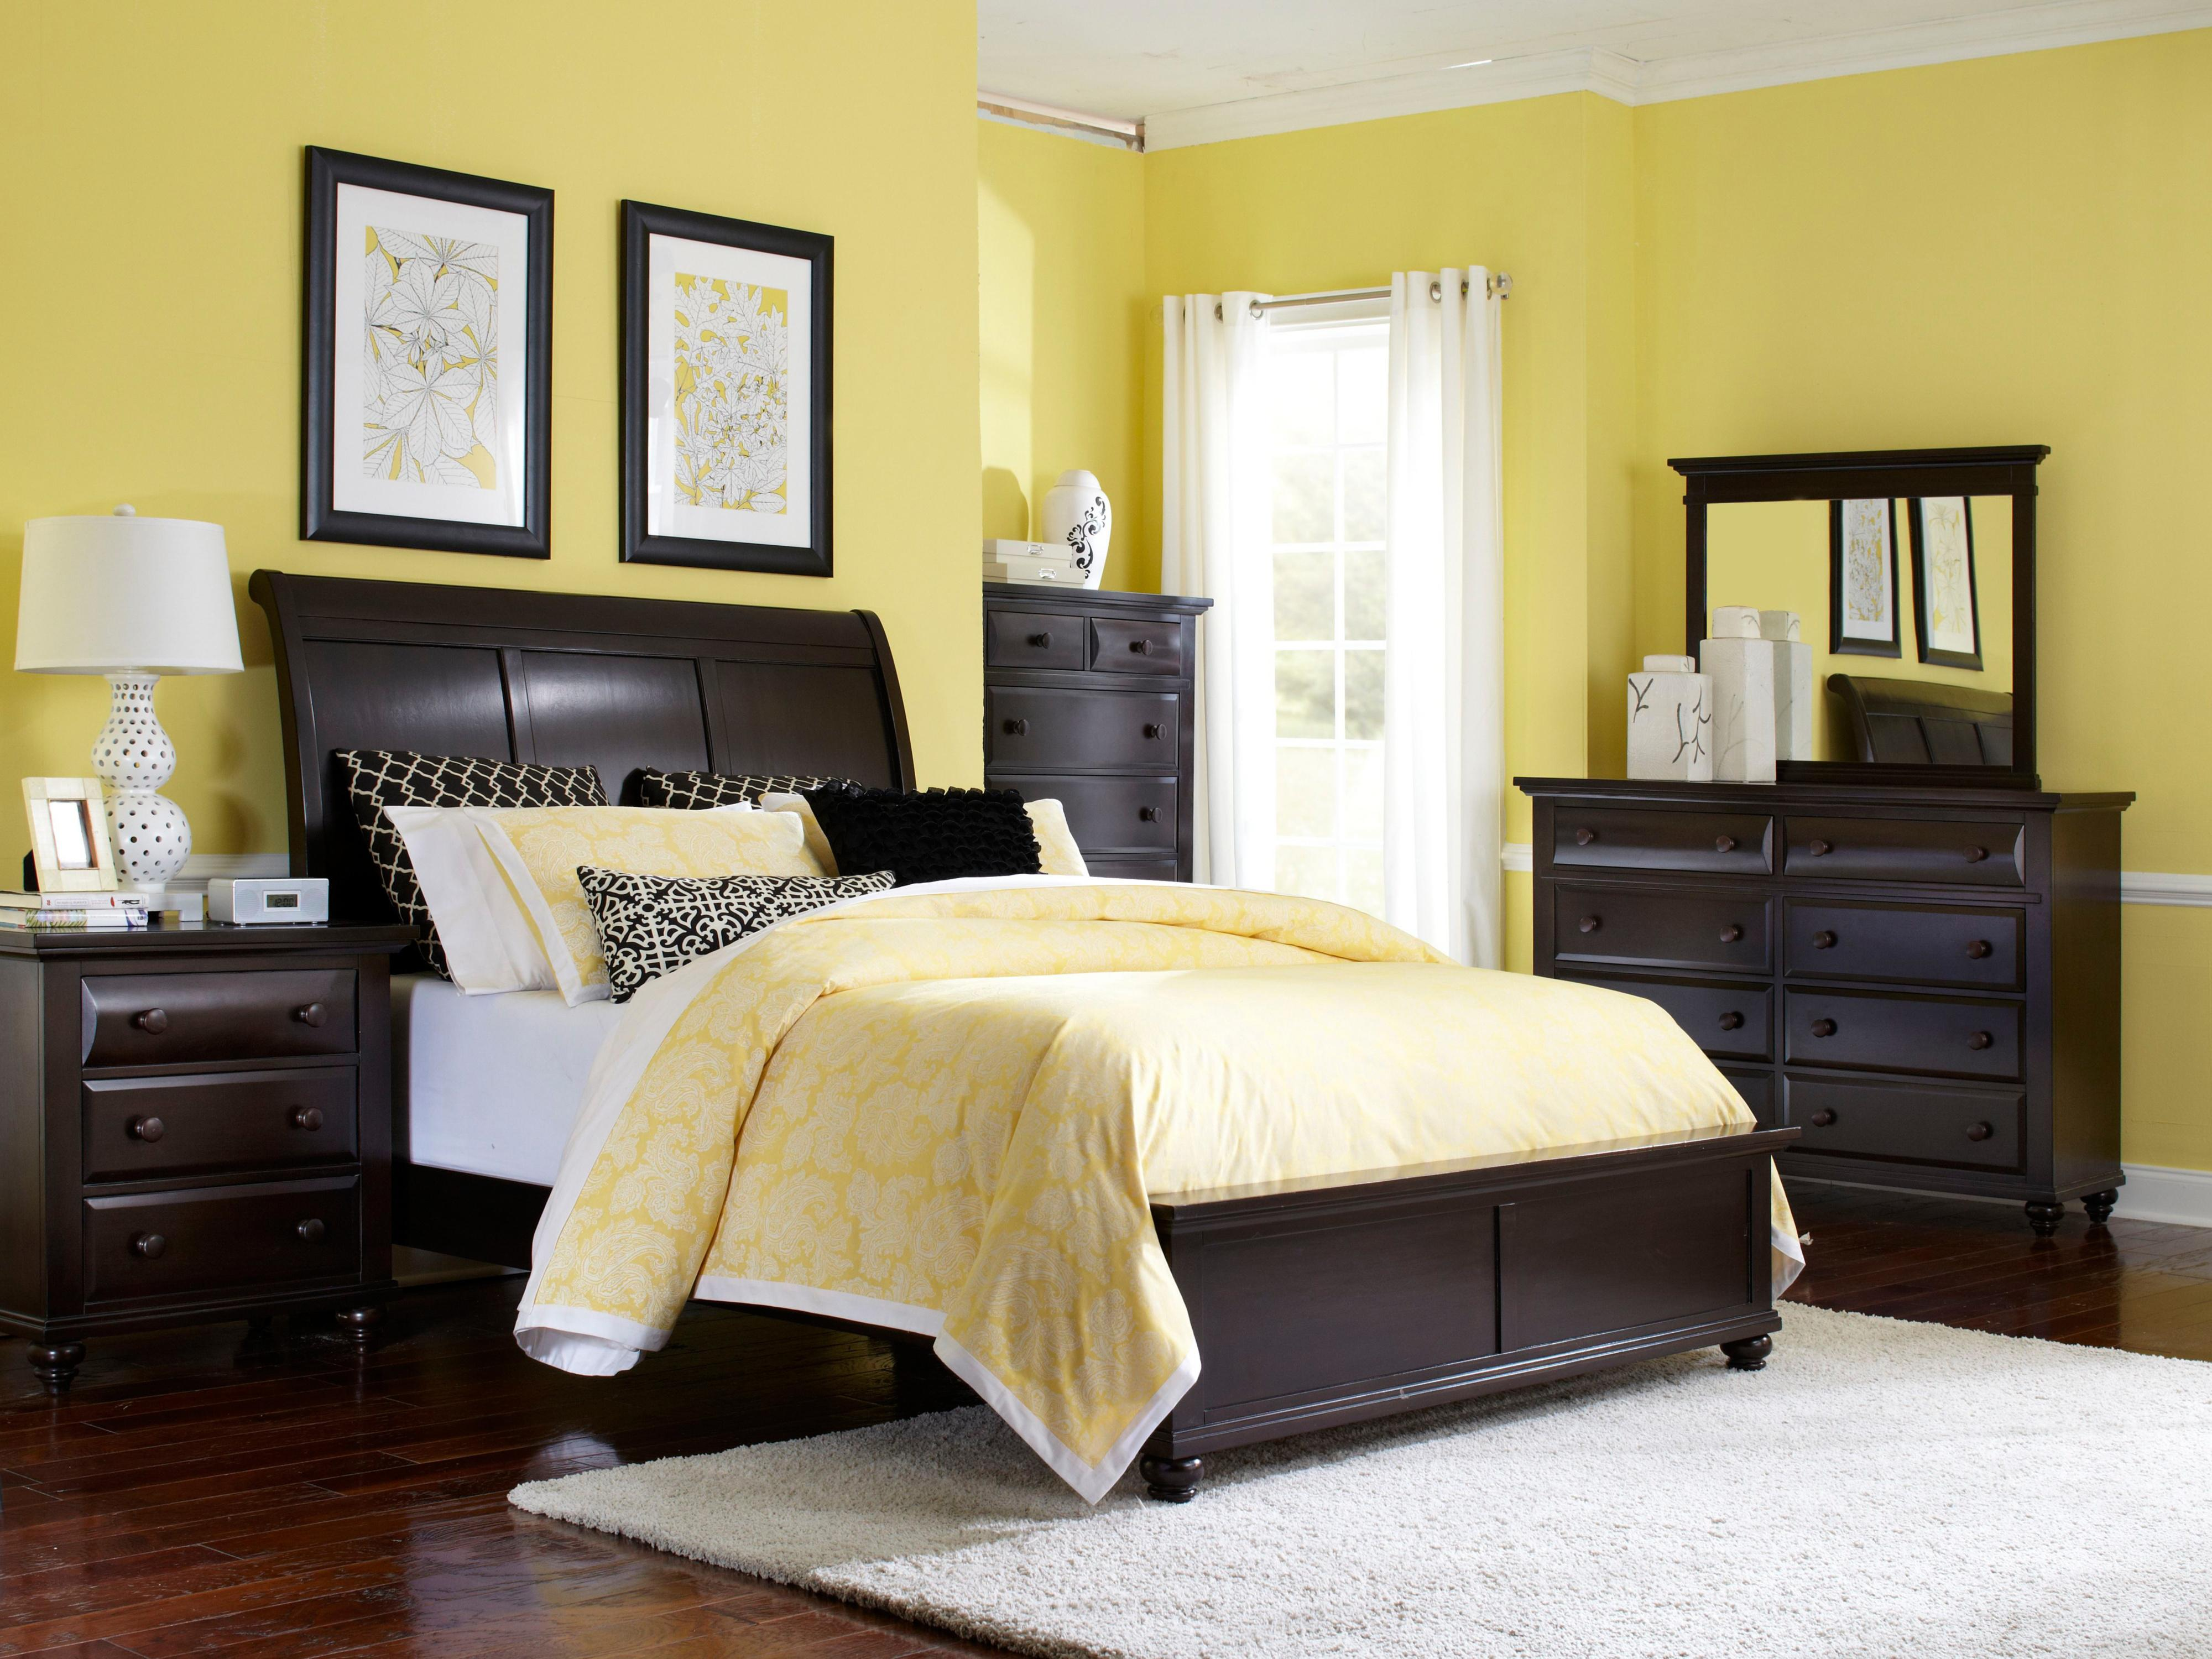 Broyhill Furniture Farnsworth Queen Bedroom Group - Item Number: 4856 Q Bedroom Group 1